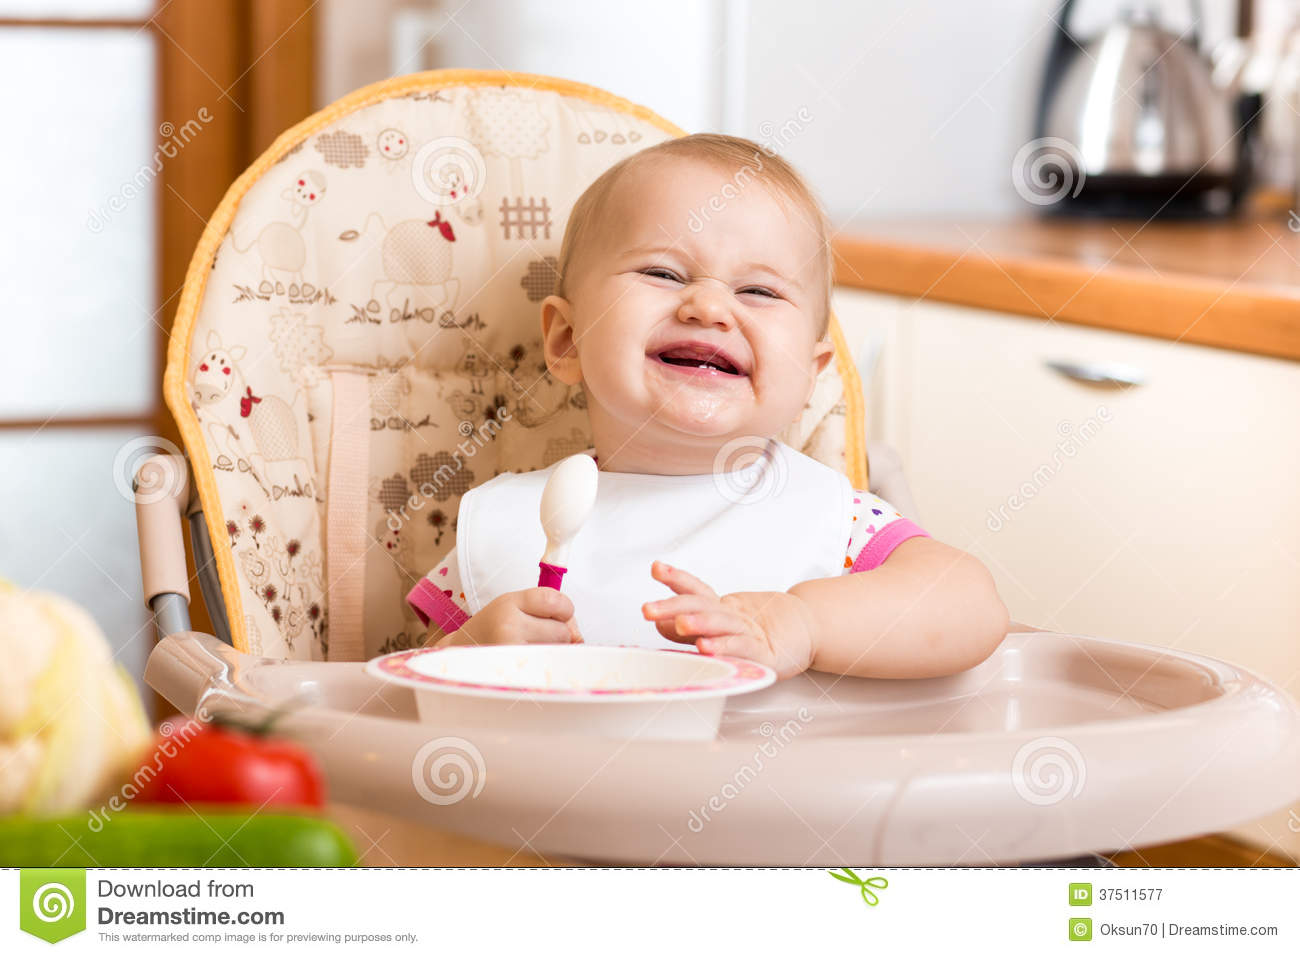 Baby Chair For Eating Funny Baby Eating In High Chair On Kitchen Stock Image